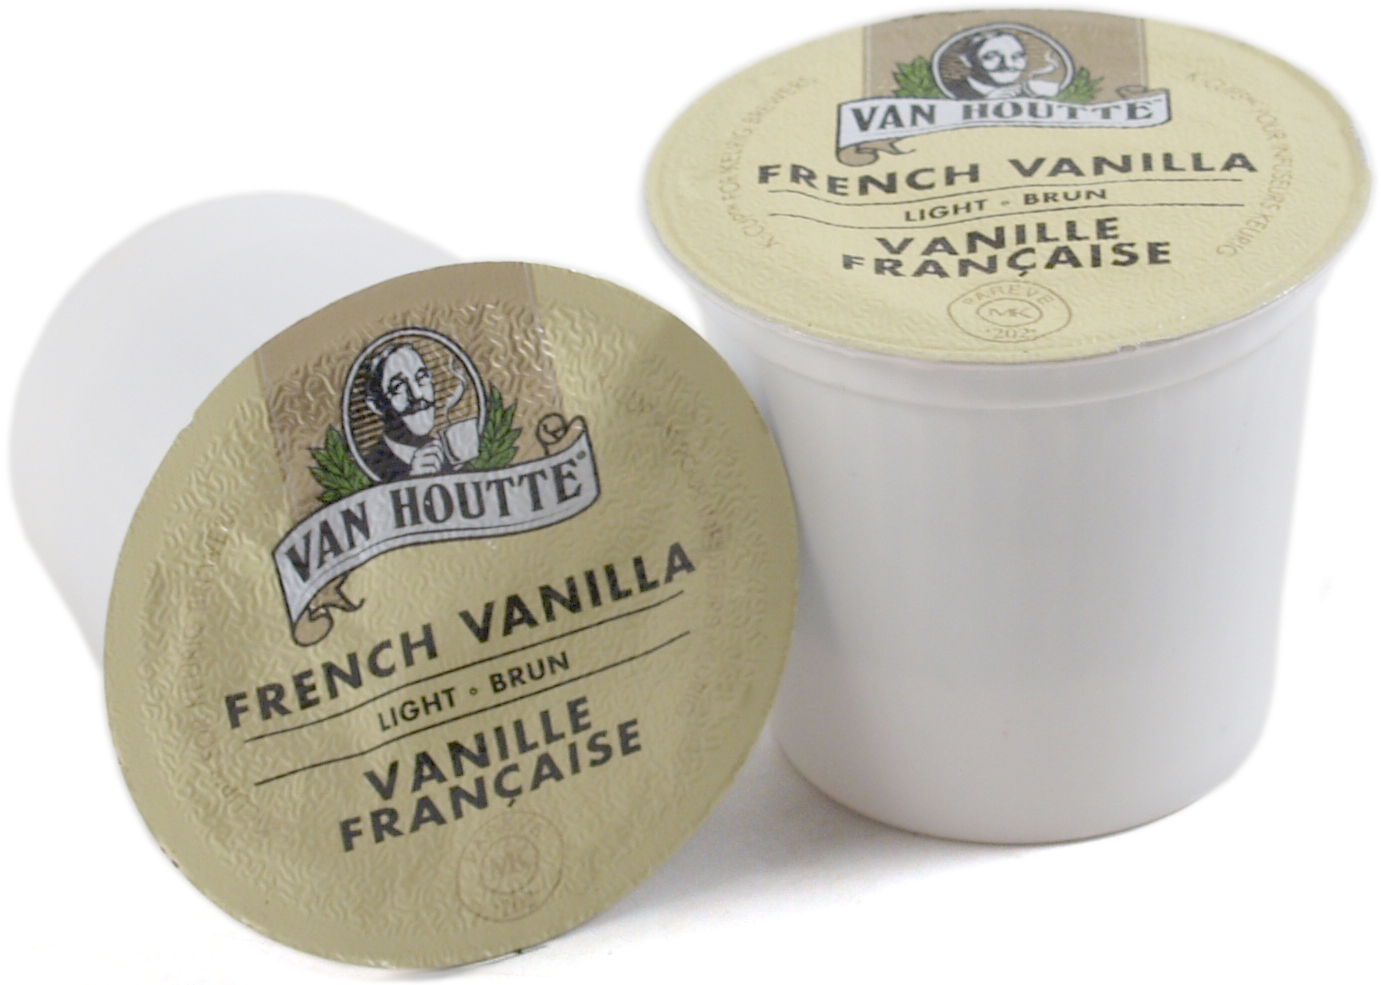 Van Houtte French Vanilla Coffee Keurig K-Cups, 180 Count